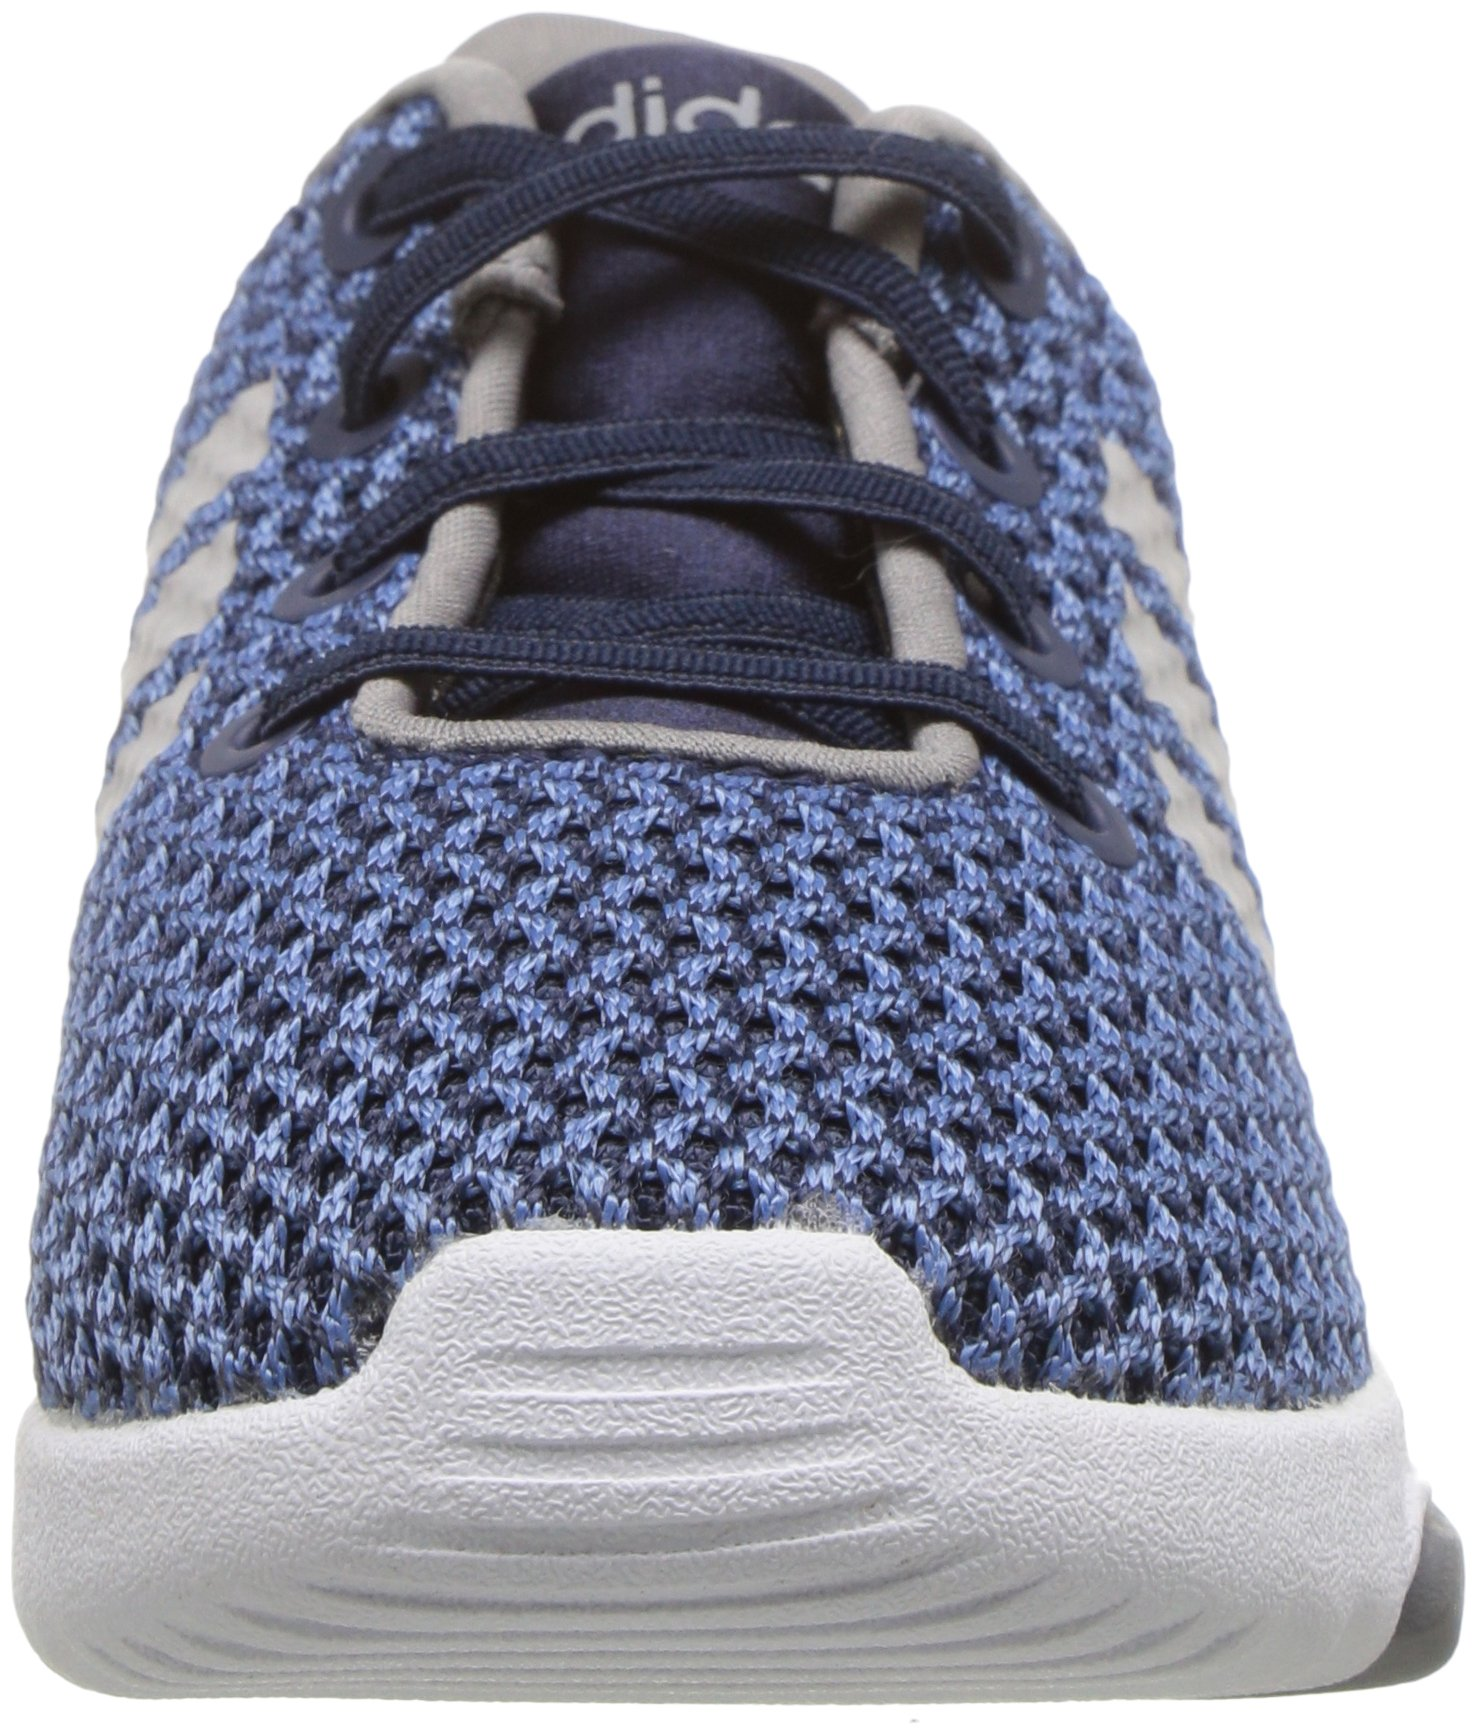 adidas Kids CF Racer TR Running Shoe, Collegiate Navy/Collegiate Navy/Grey, 5K M US Toddler by adidas (Image #4)